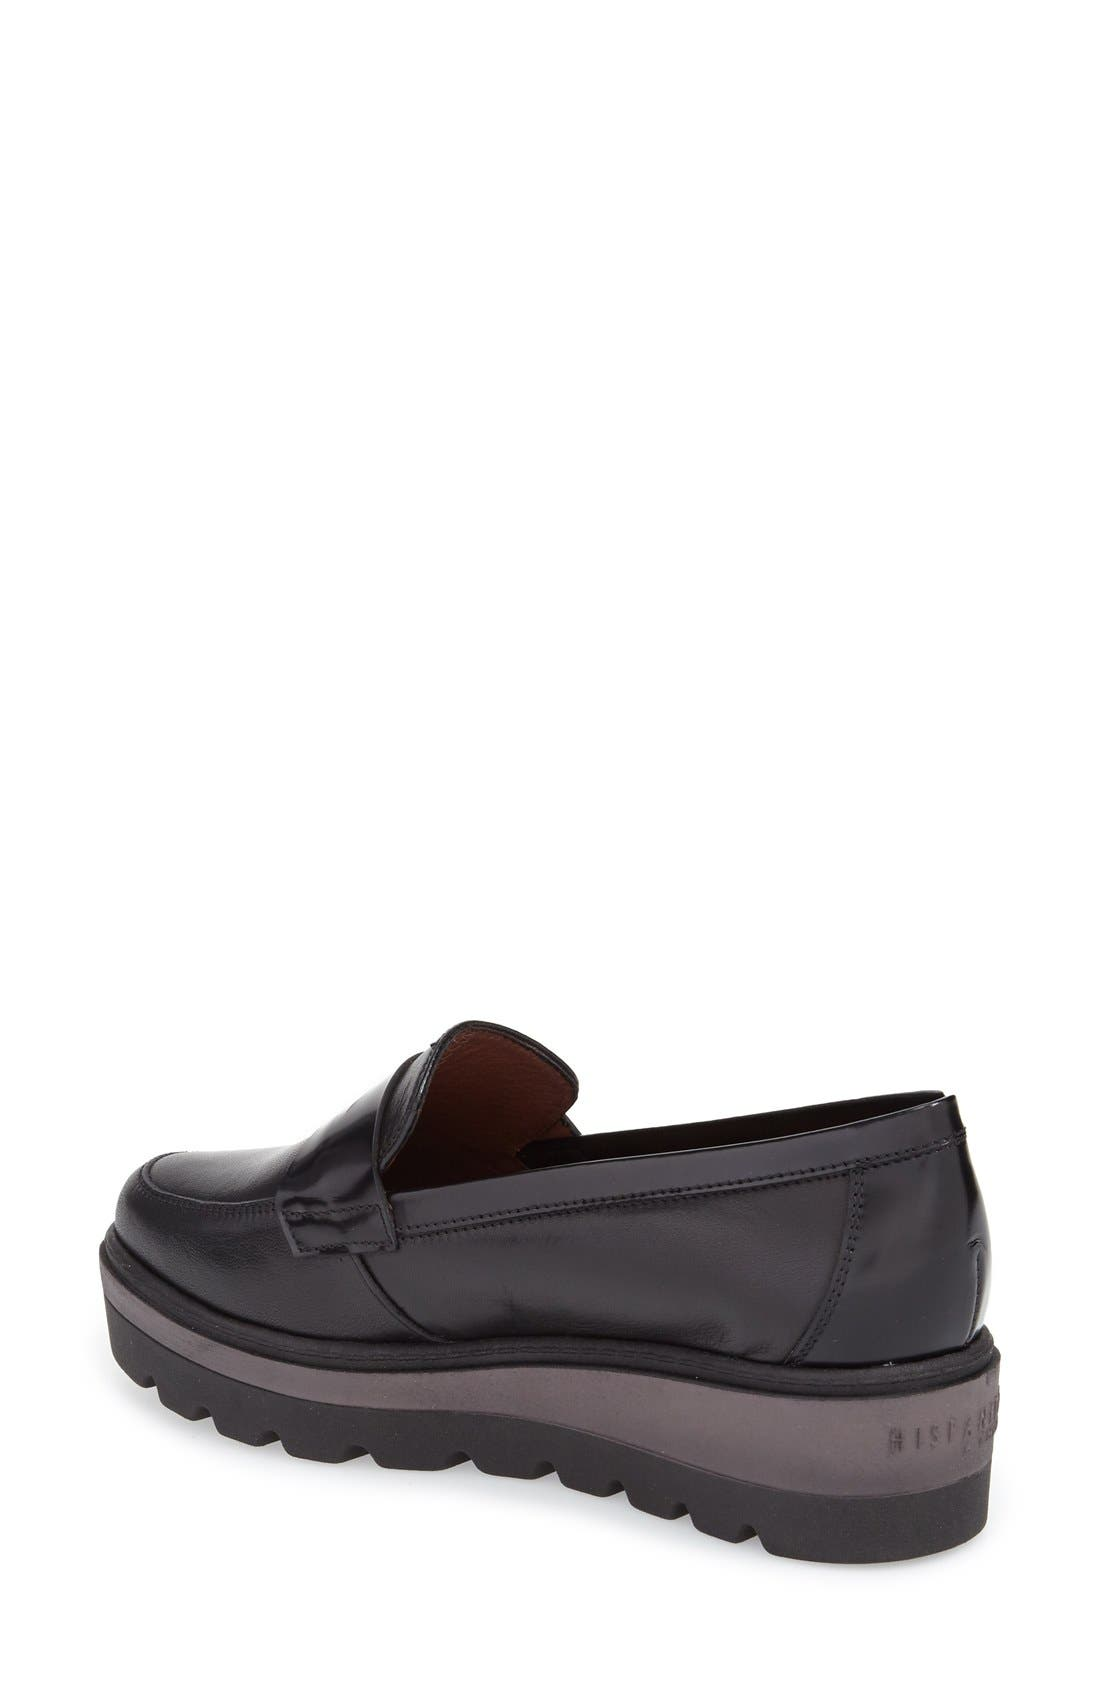 Alternate Image 2  - Hispanitas 'Acacia' Wedge Loafer (Women)